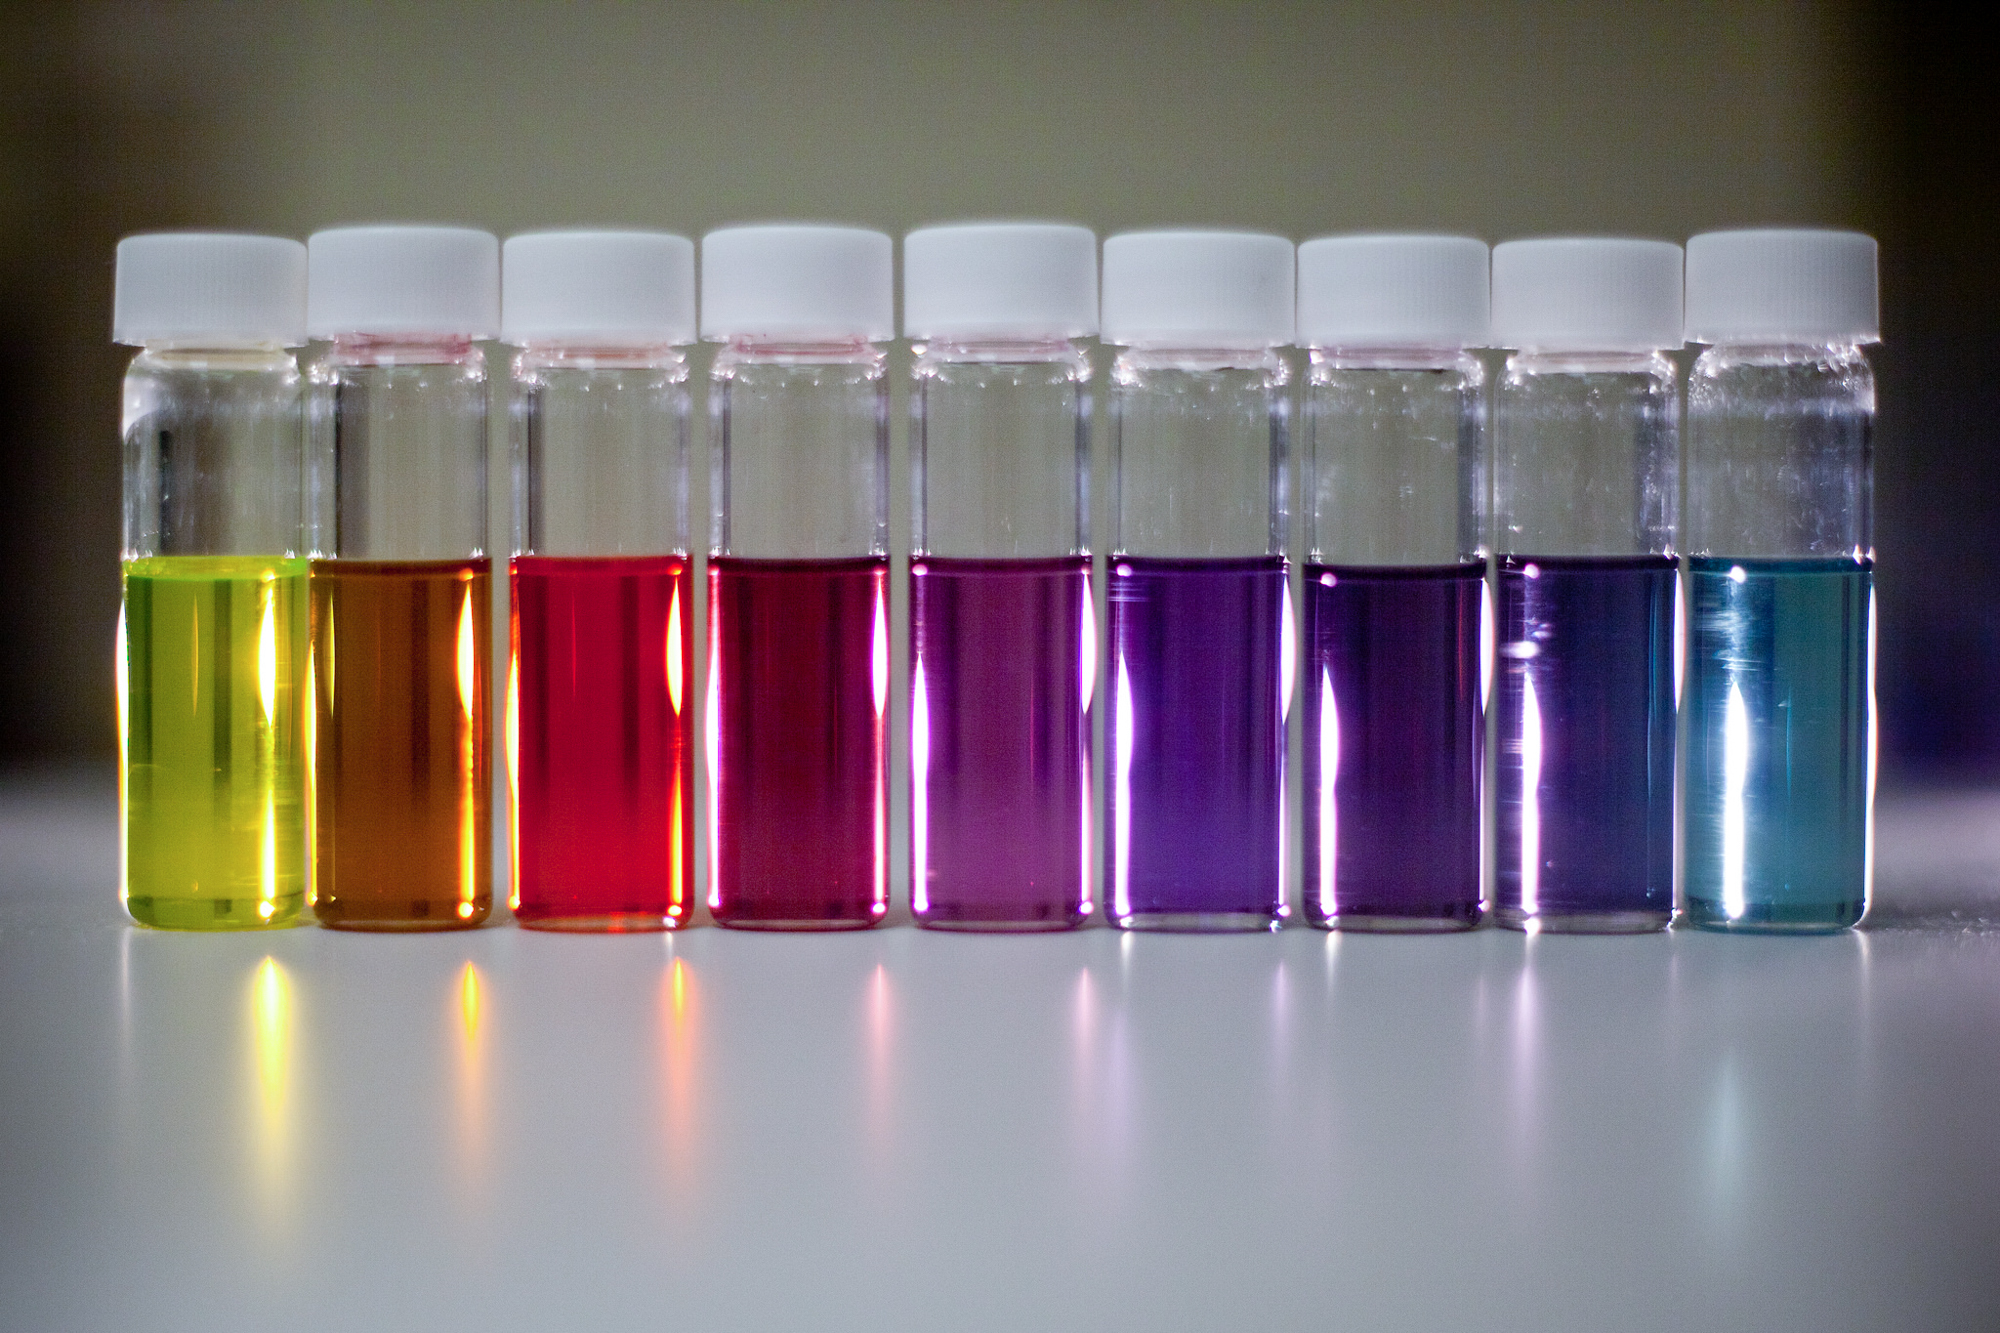 Materials Science and Engineering doctoral student Bong-Gi Kim prepares thin films of plastic for testing in solar cells. He works inside the nitrogen environment of the glove box so that the polymer material isn't contaminated by oxygen in the air. The vials display a rainbow of liquid polymers that absorb different parts of the solar spectrum.